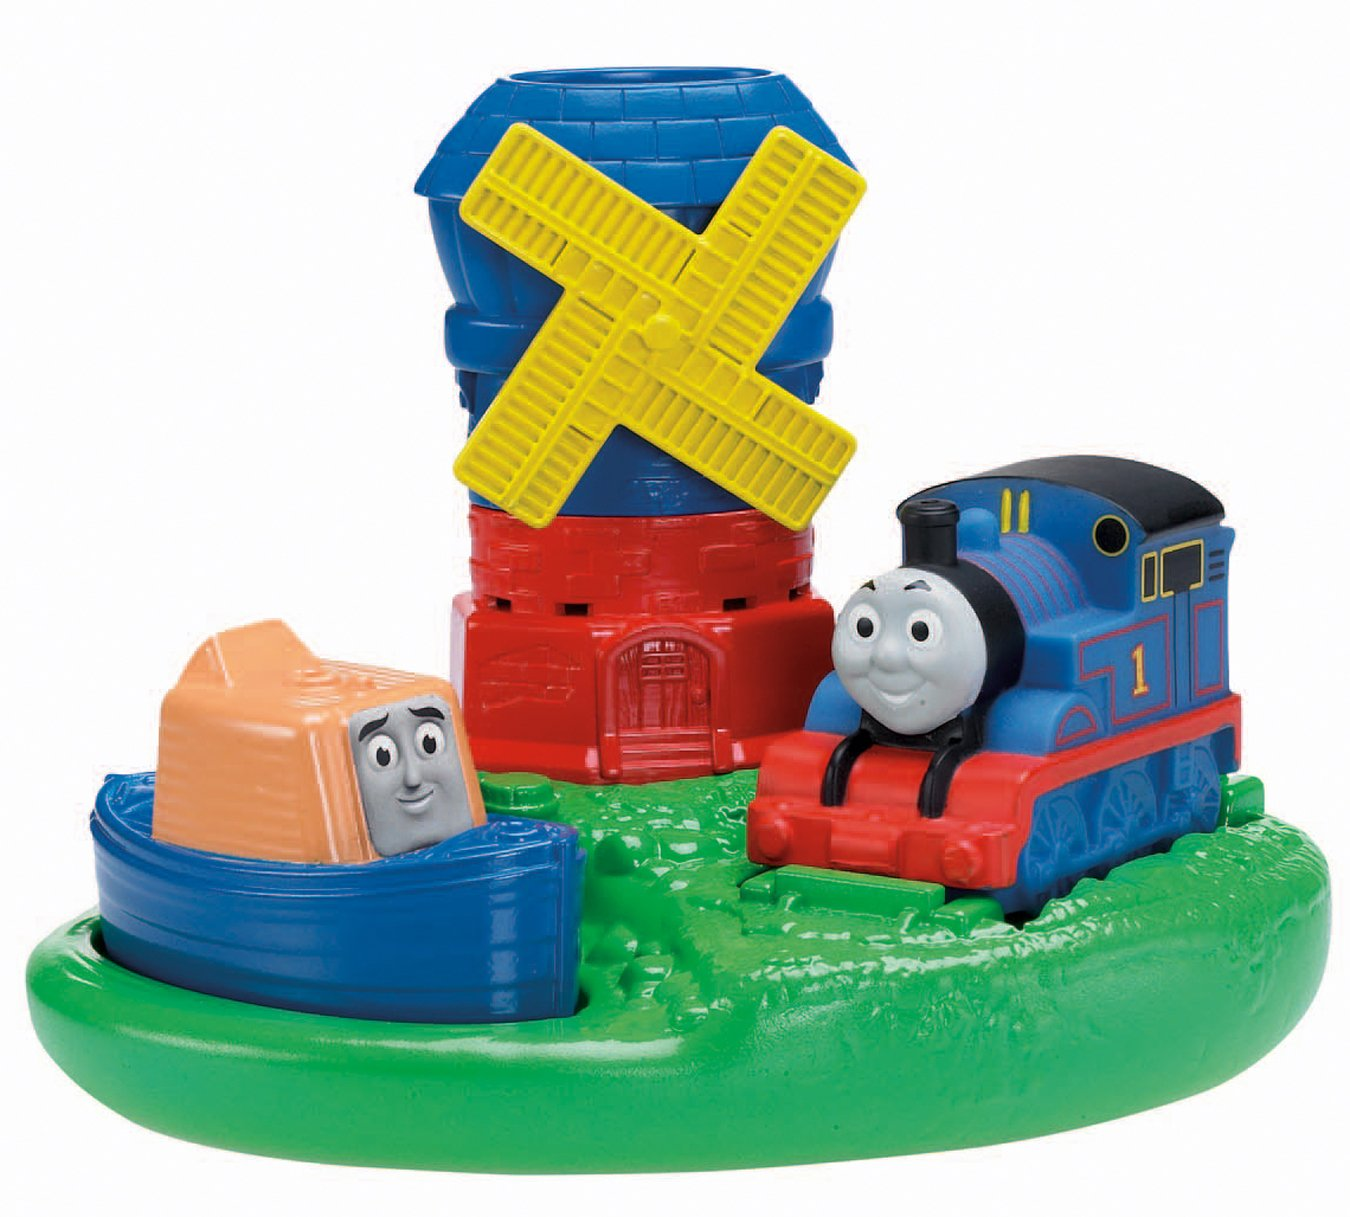 Thomas and Friends Island of Sodor Bath Play: Amazon.co.uk: Toys & Games